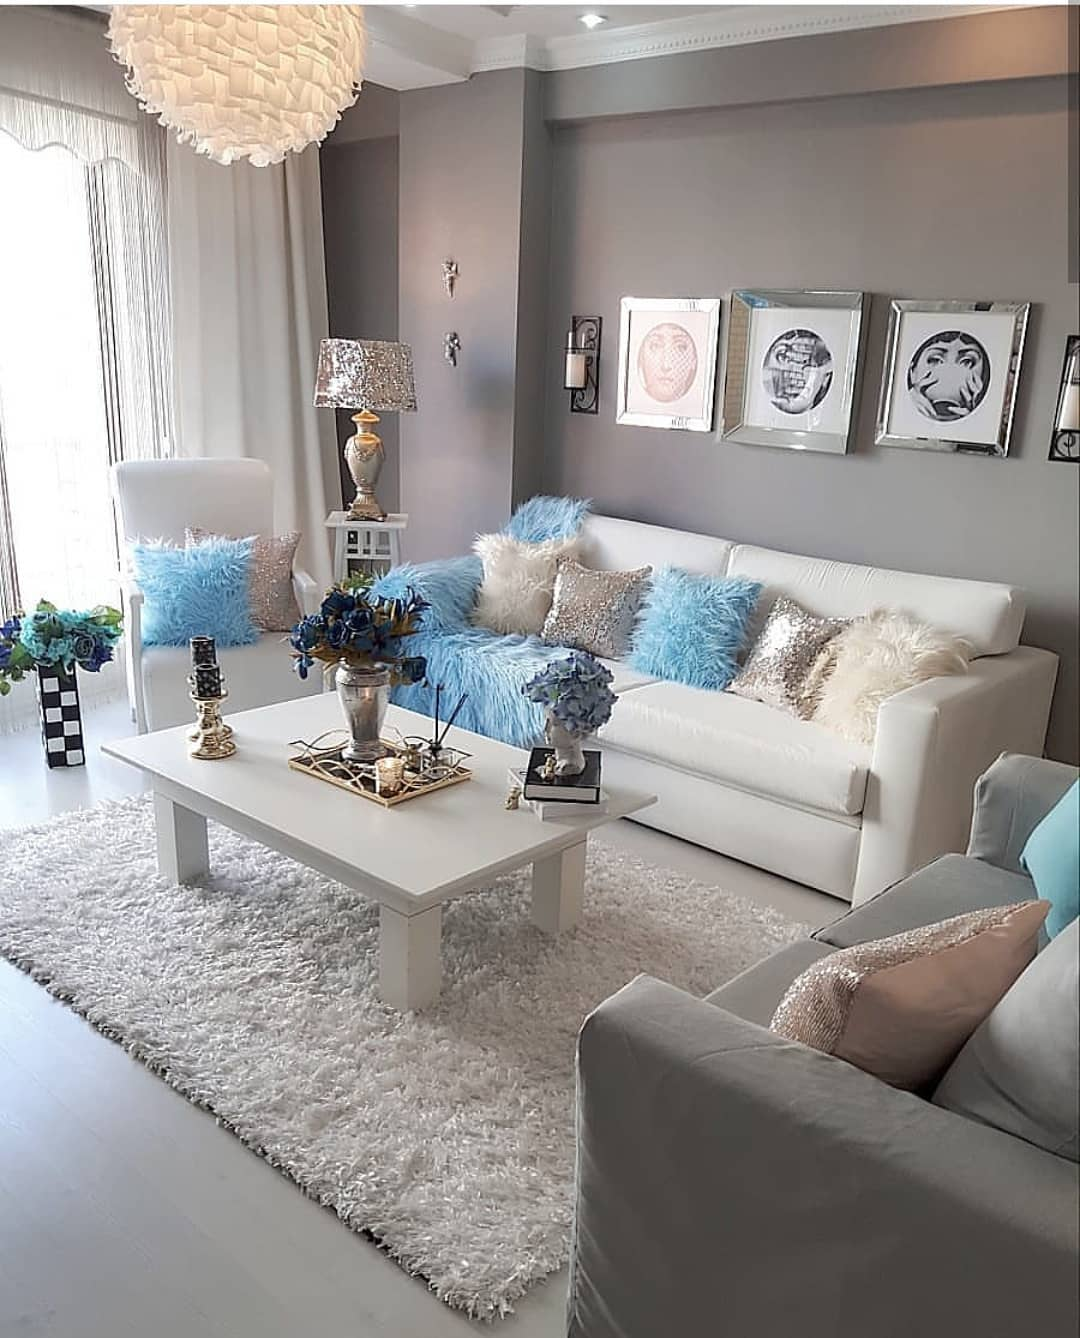 2019 Best Living Room Decoration ideas 34